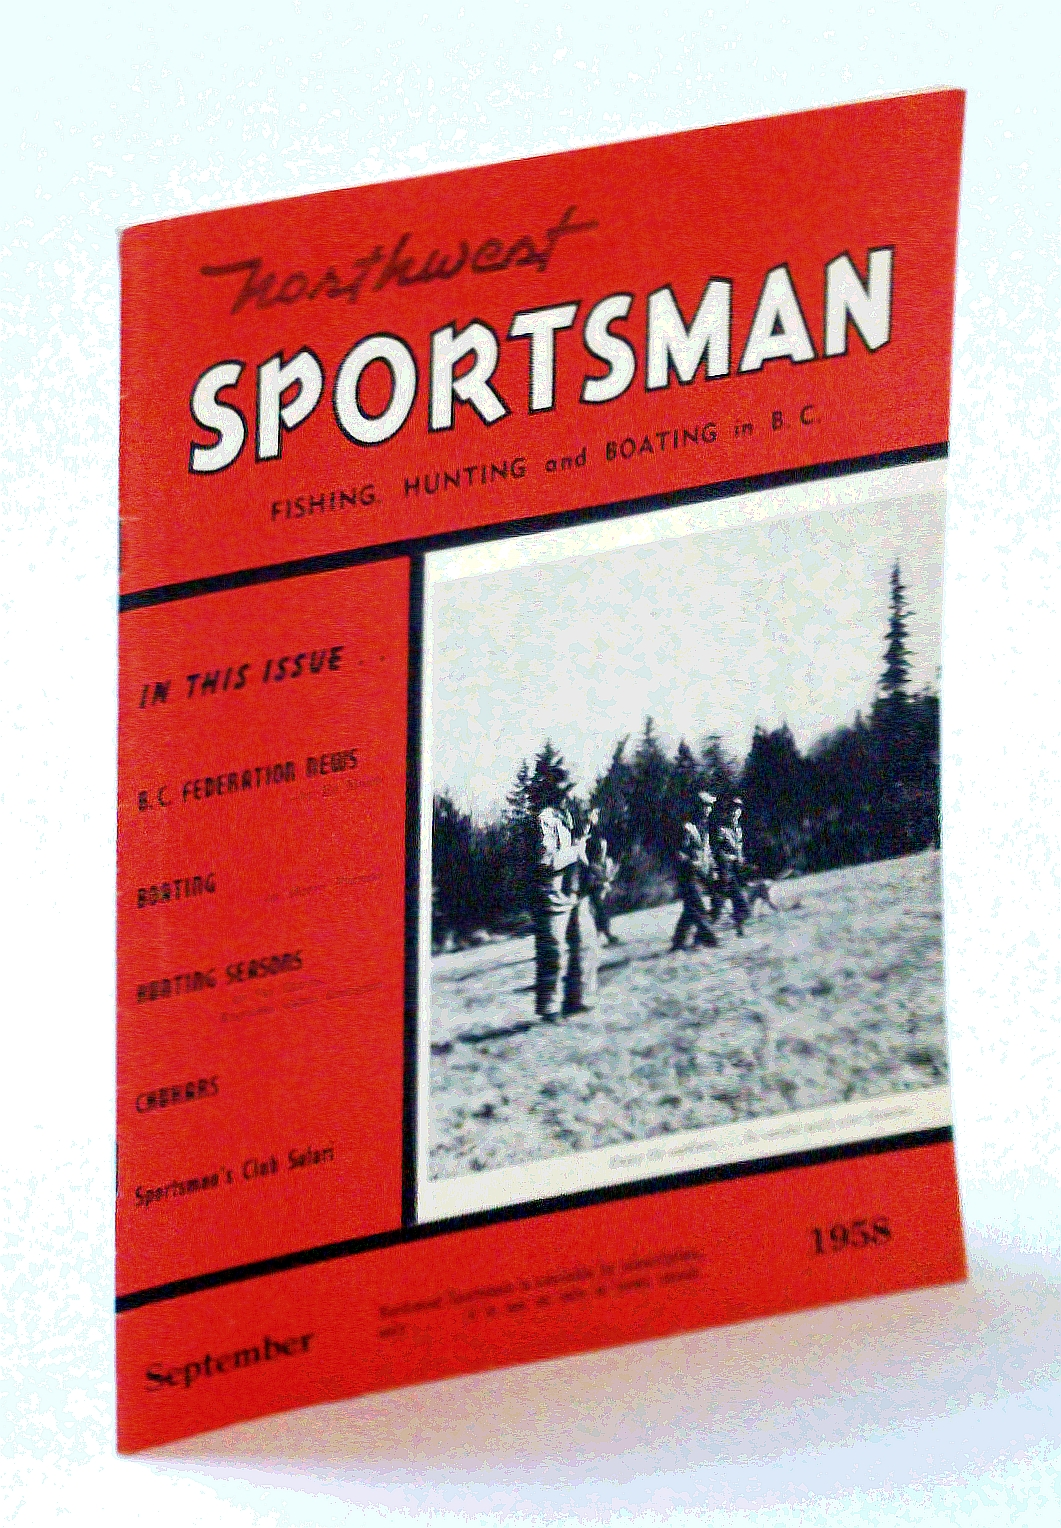 Image for Northwest Sportsman Magazine - Fishing, Hunting and Boating in B.C., September [Sept.] 1958 - The Chukar